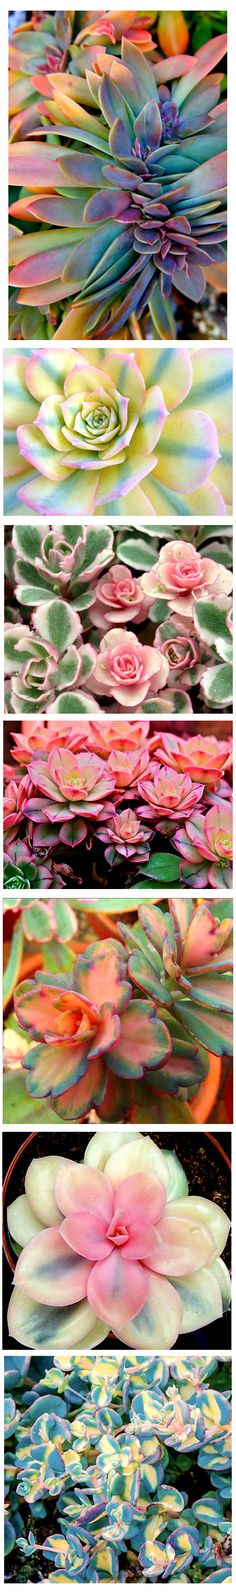 Variegated Succulents . ~~~~ The pictures are beautiful!  I'd like to try some…